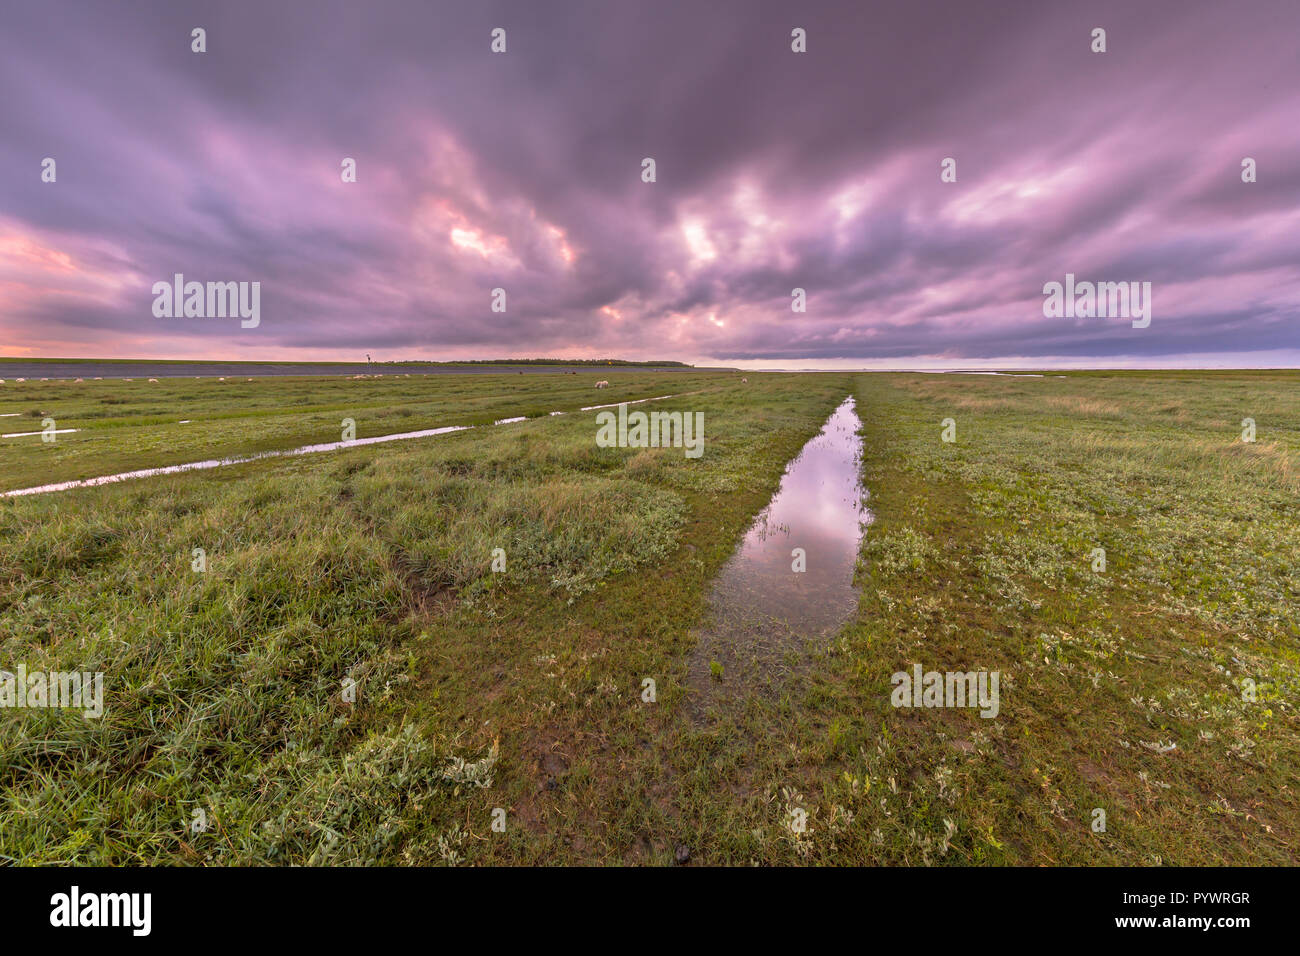 Sunset over ditch in tidal marsh flat at Waddensea, Friesland, Netherlands Stock Photo